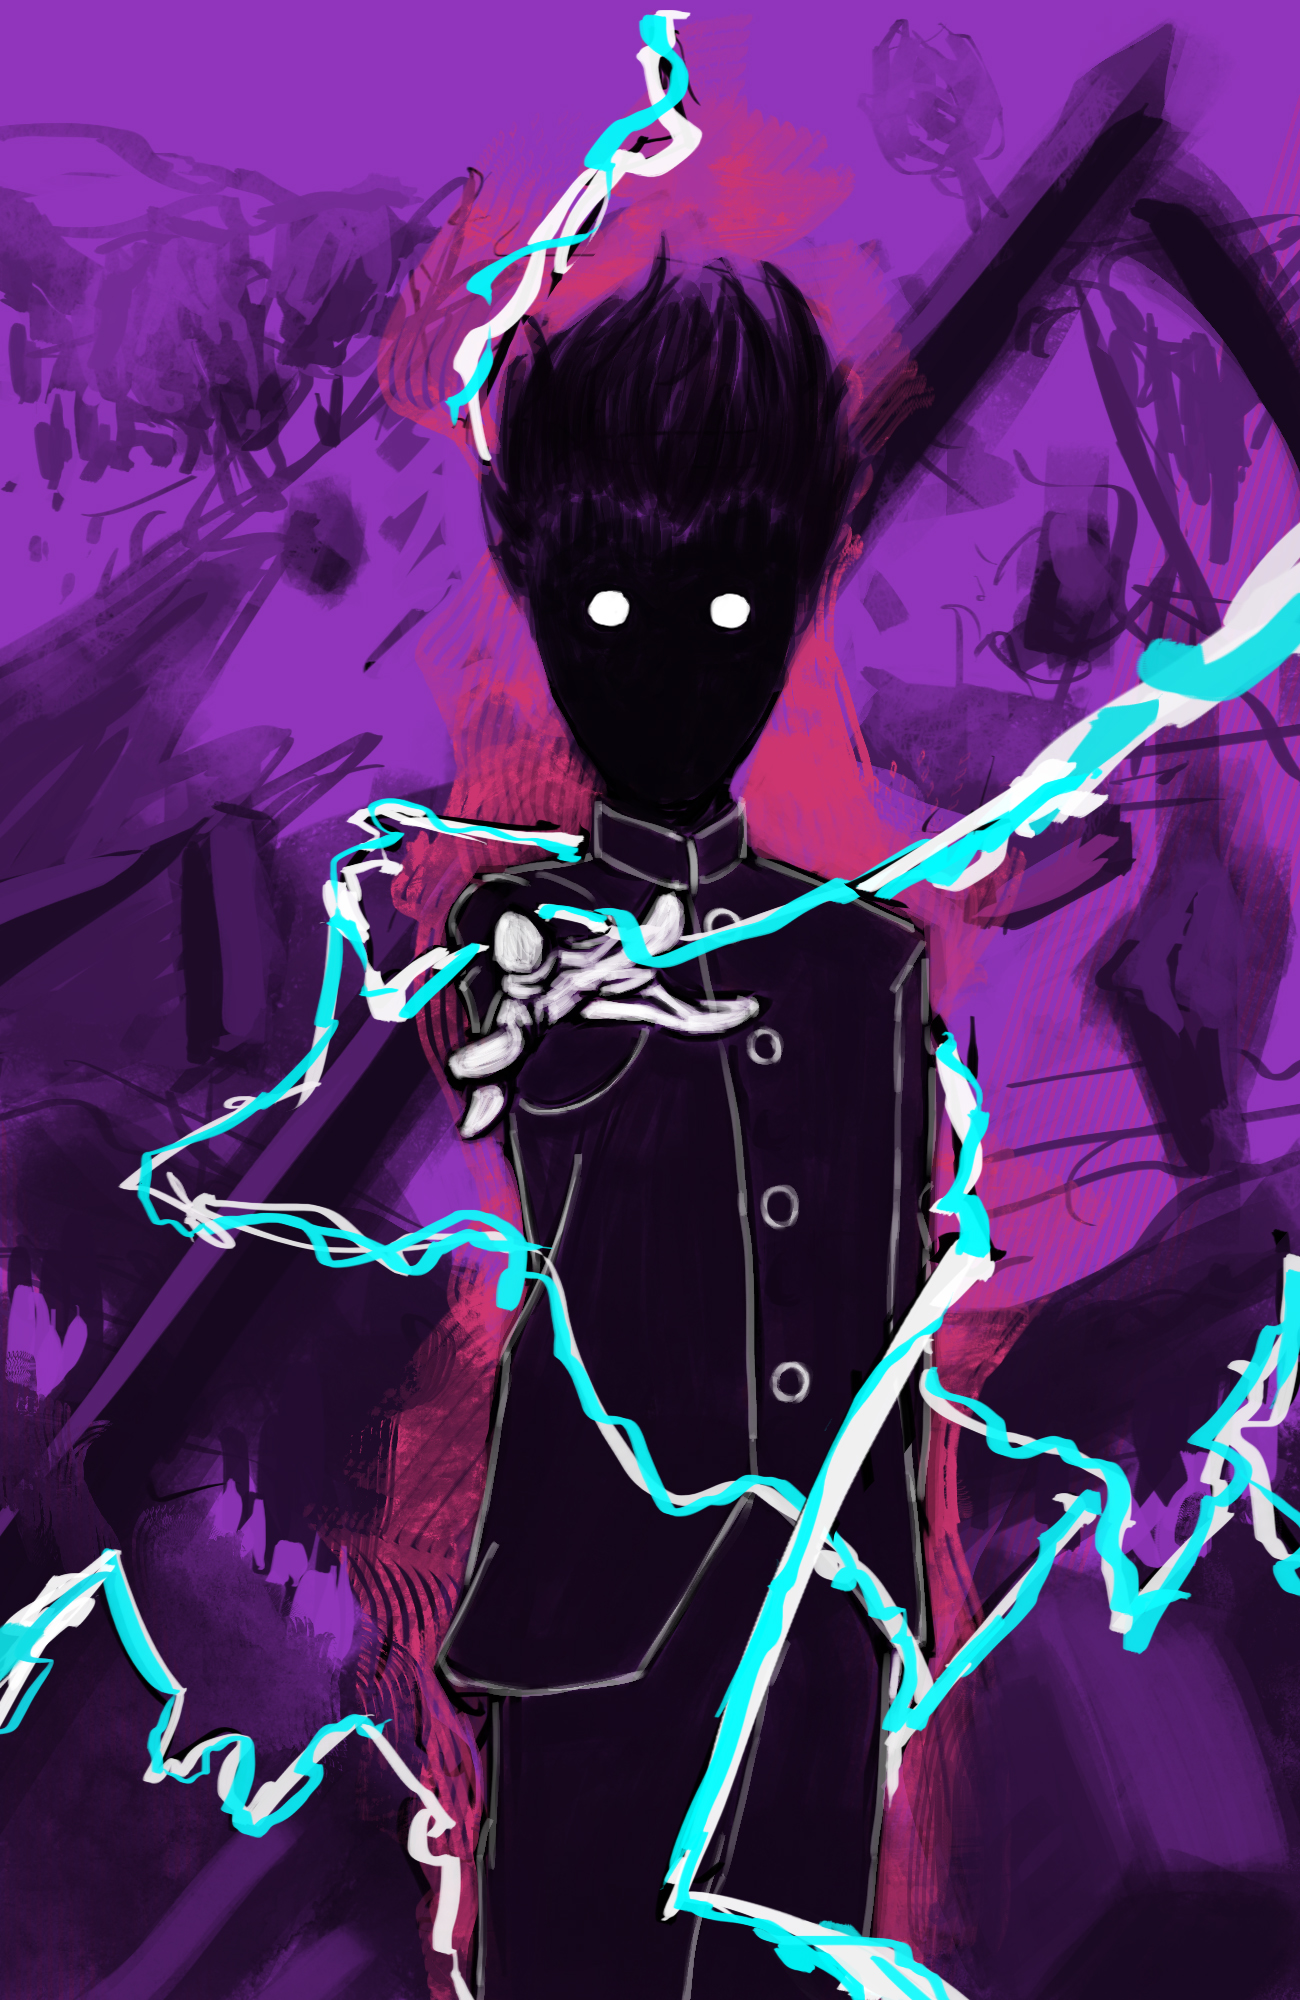 Mob psycho 100(F.V) by Fr1ezE on DeviantArt